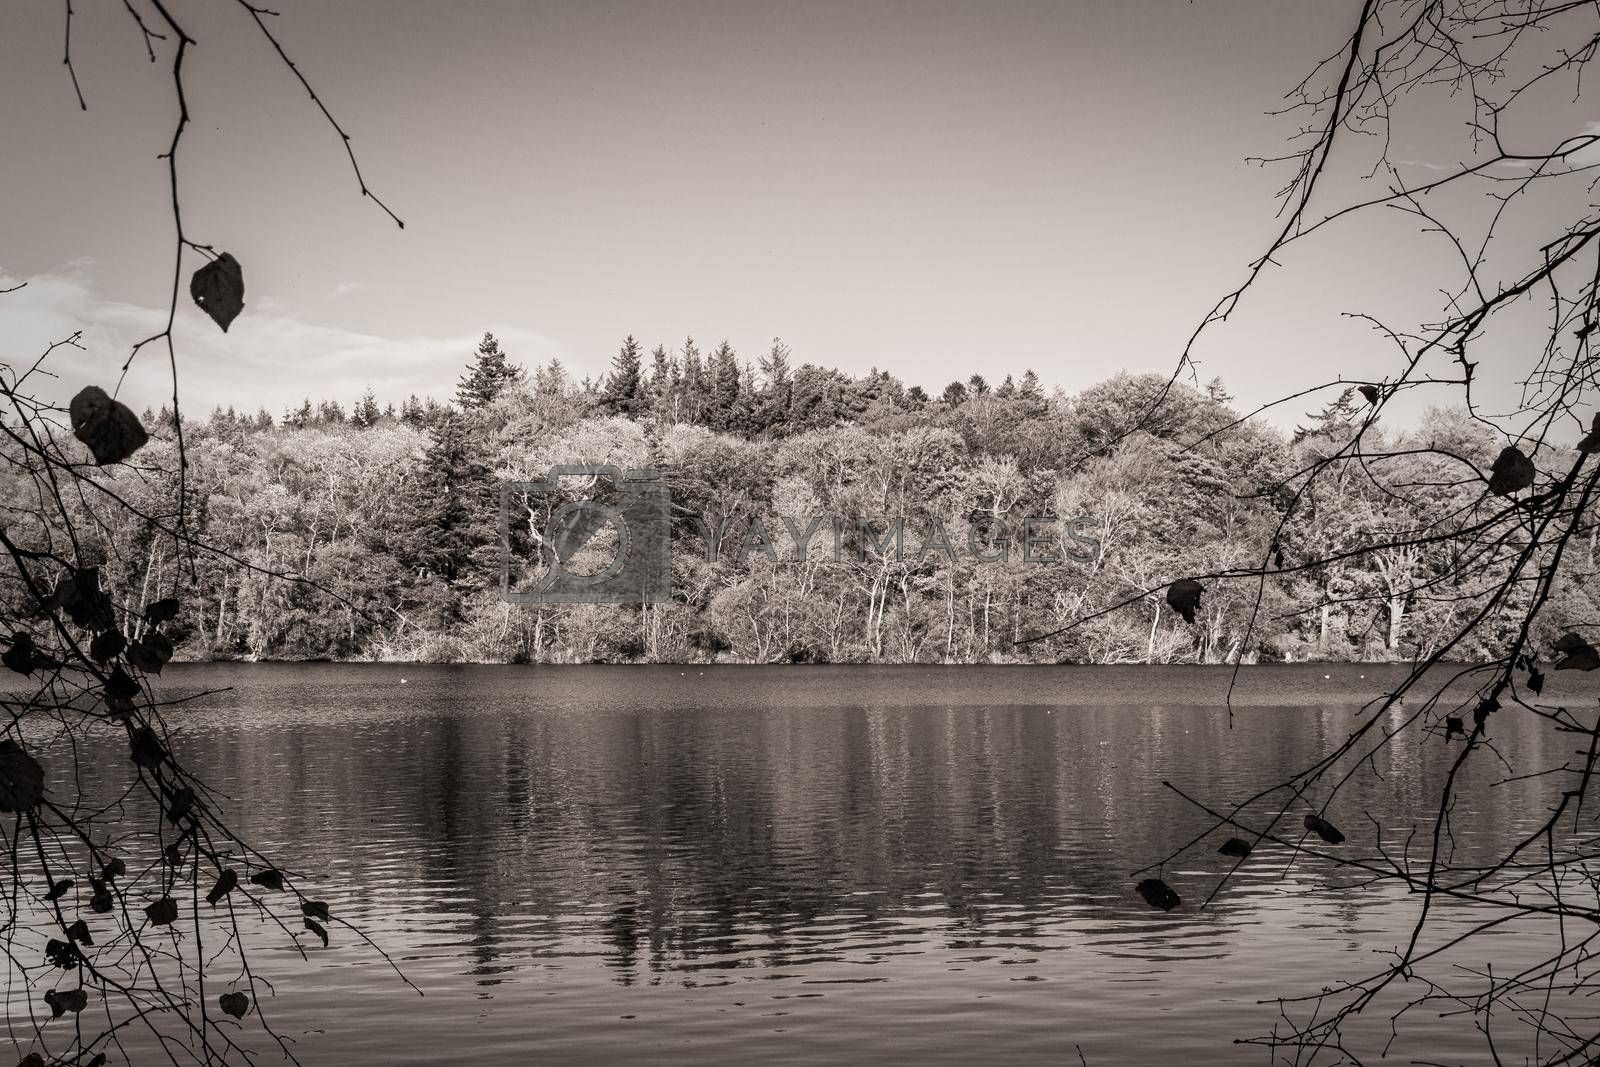 A monochrome view of the side of a lake, with the trees and vegetation reflected in the water. There is a mostly cloudless sky, an some nearby branches in silhouette framing the sides of the image.